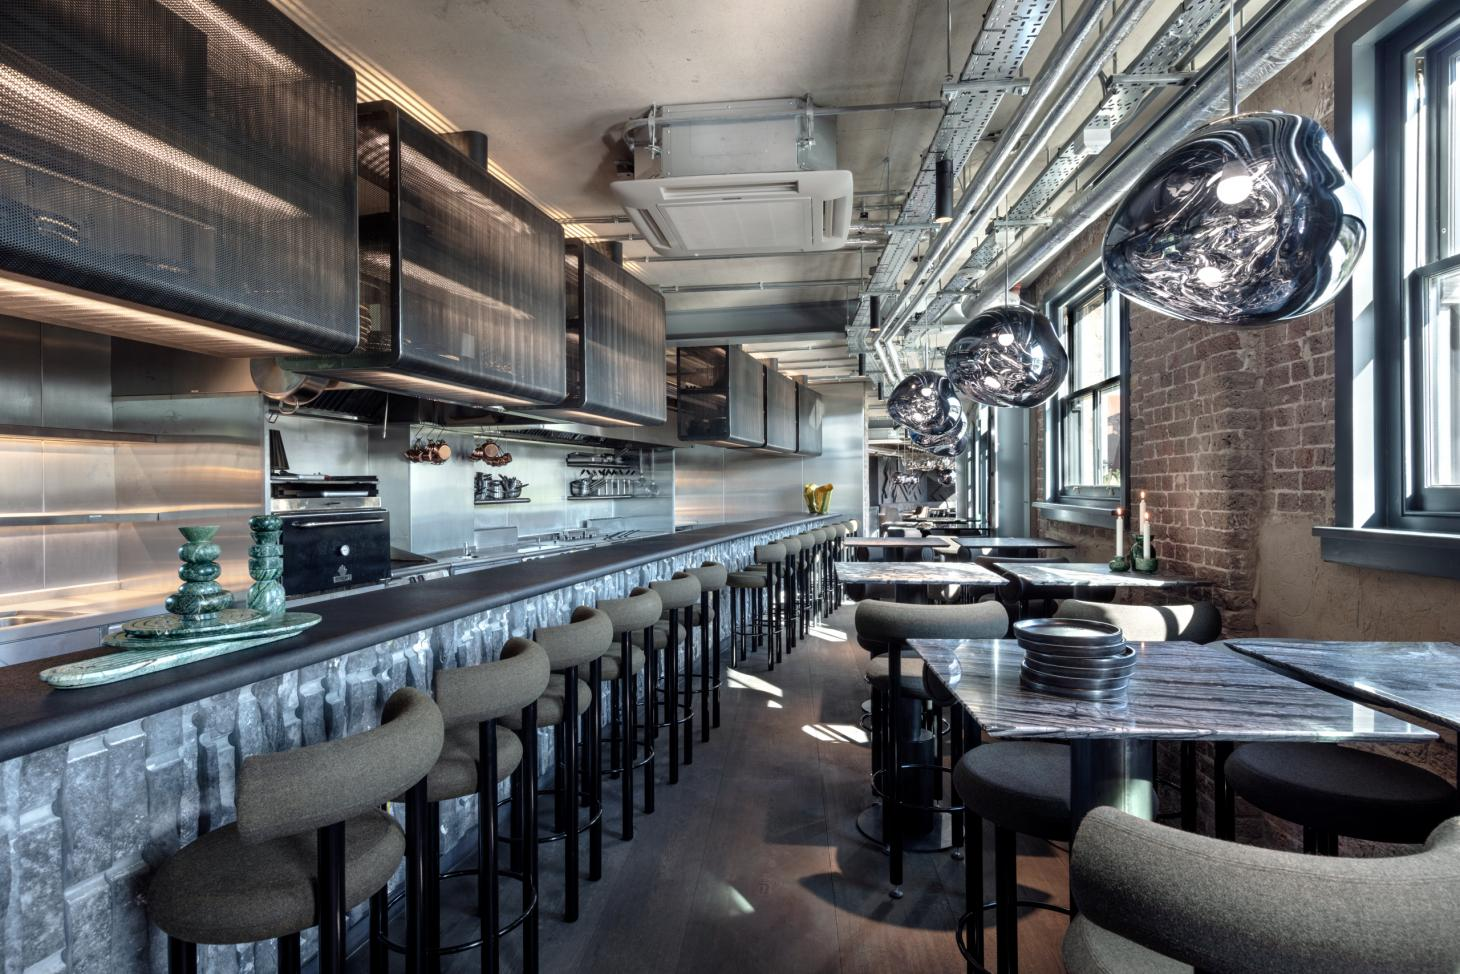 The Coal Office restaurant interior Tom Dixon